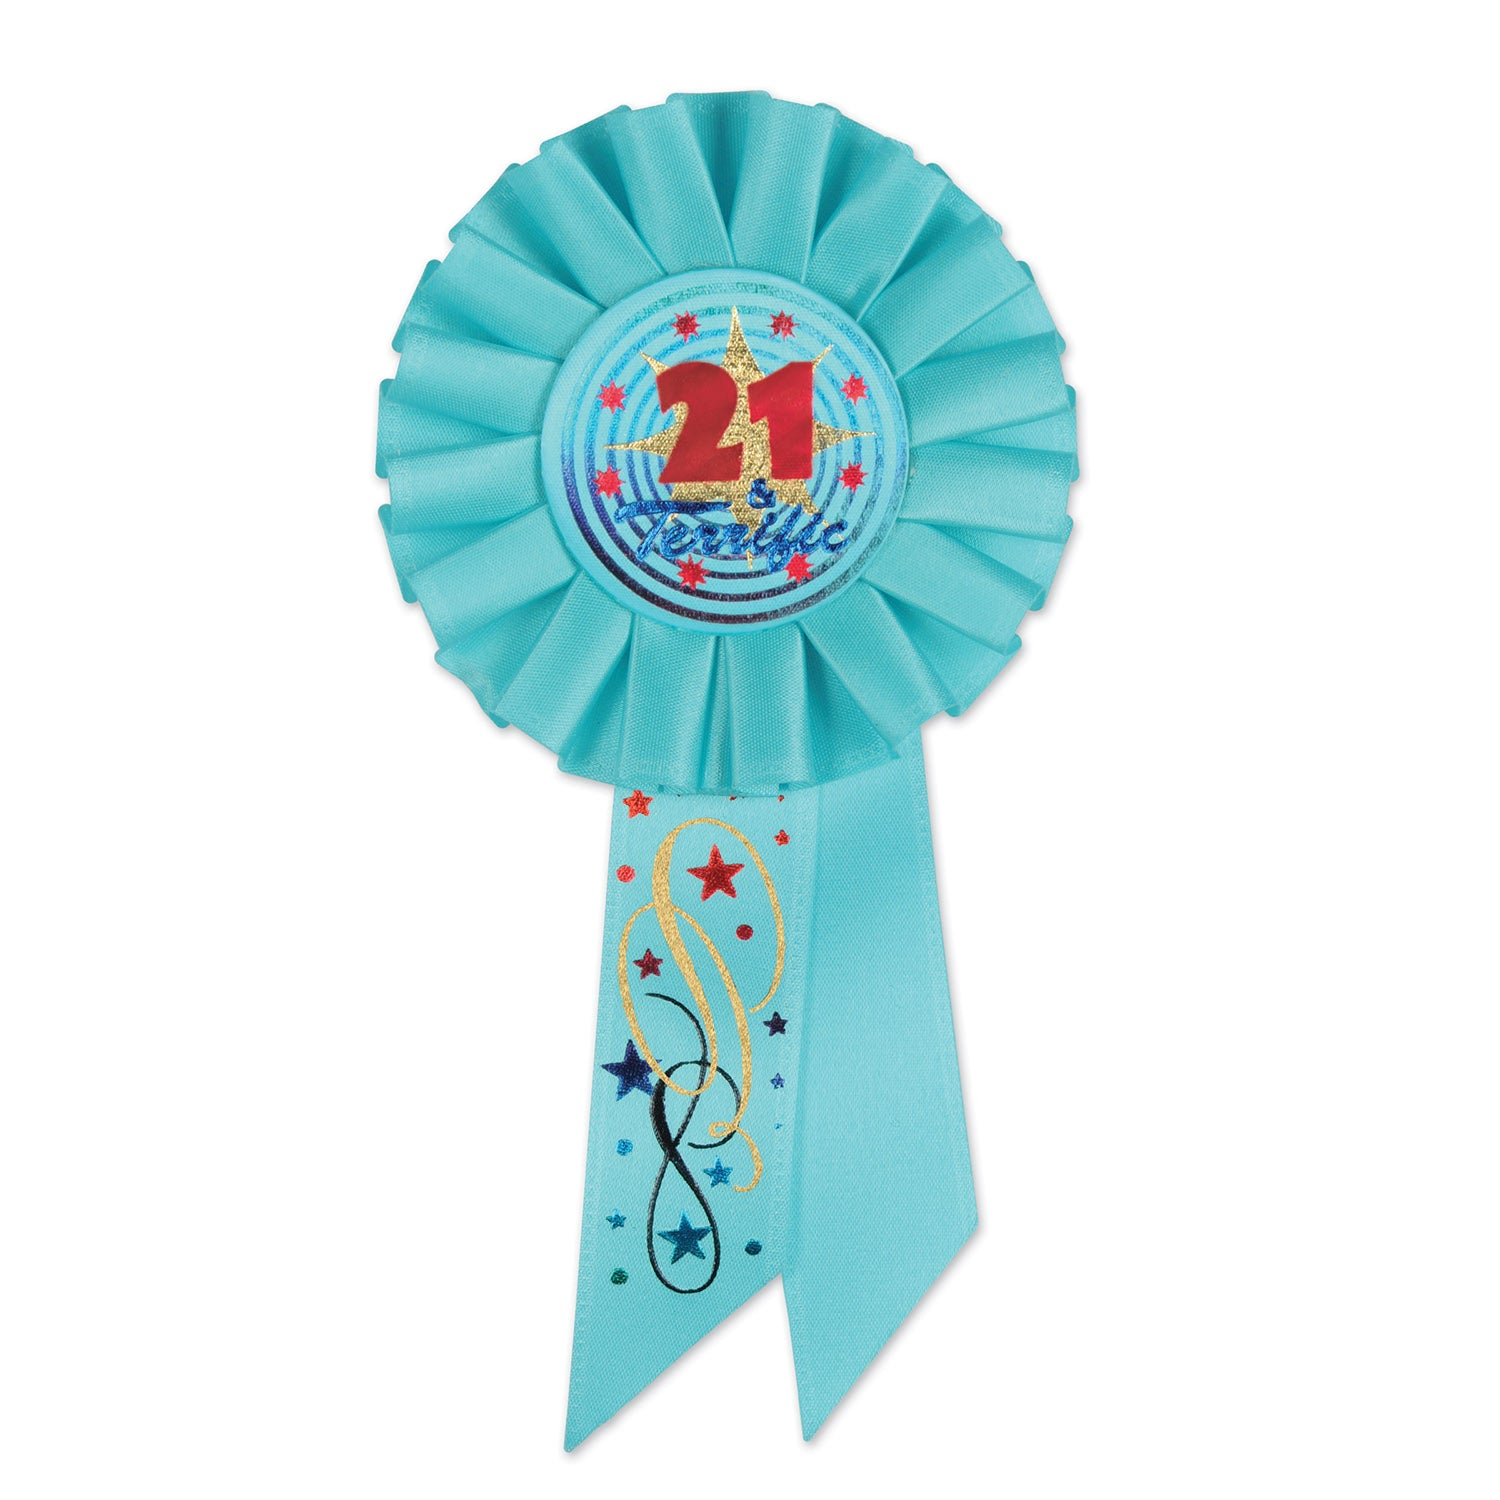 21 & Terrific Rosette by Beistle - 21st Birthday Theme Decorations